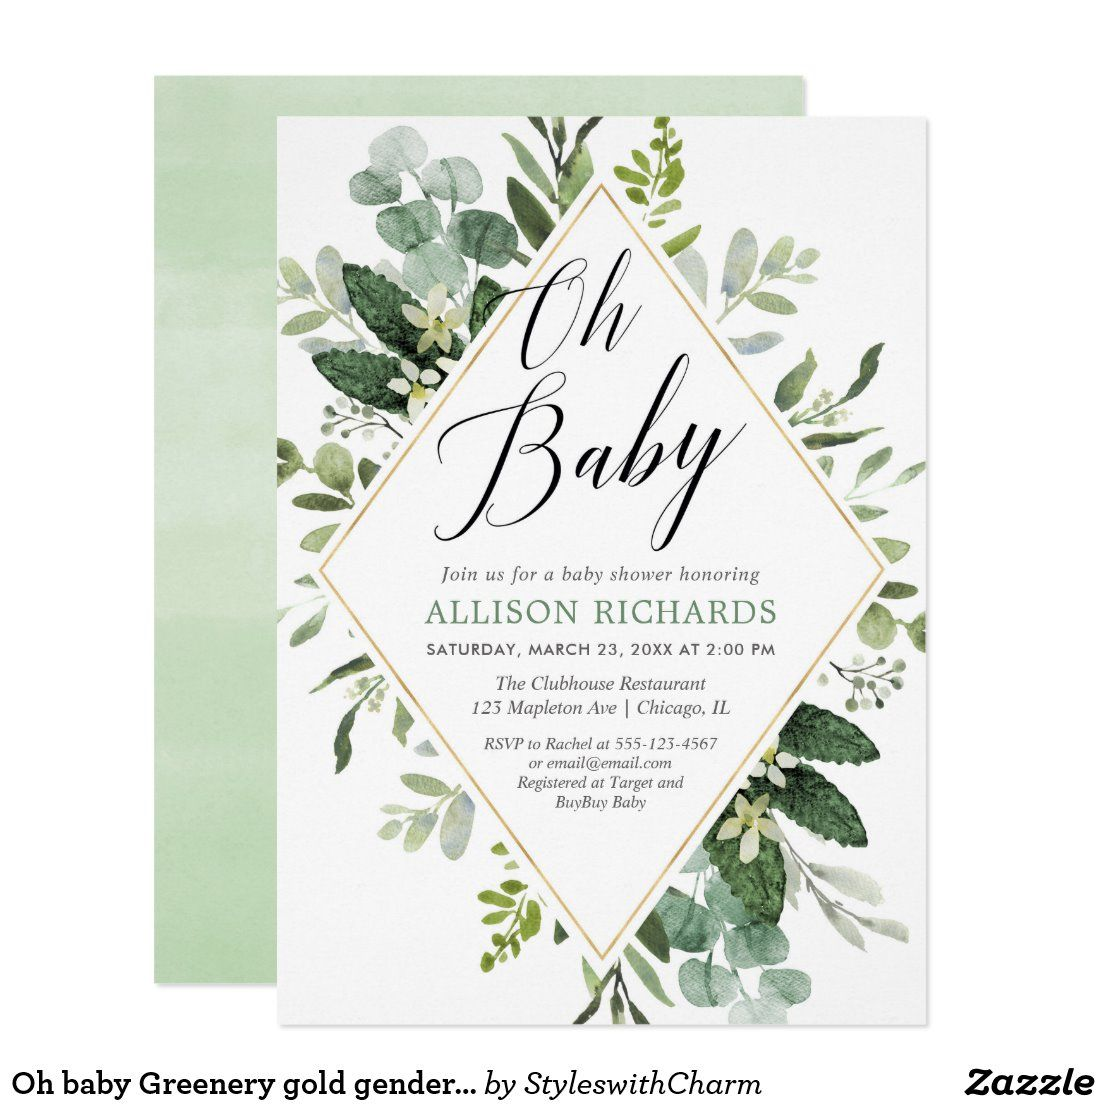 Oh baby Greenery gold gender neutral baby shower